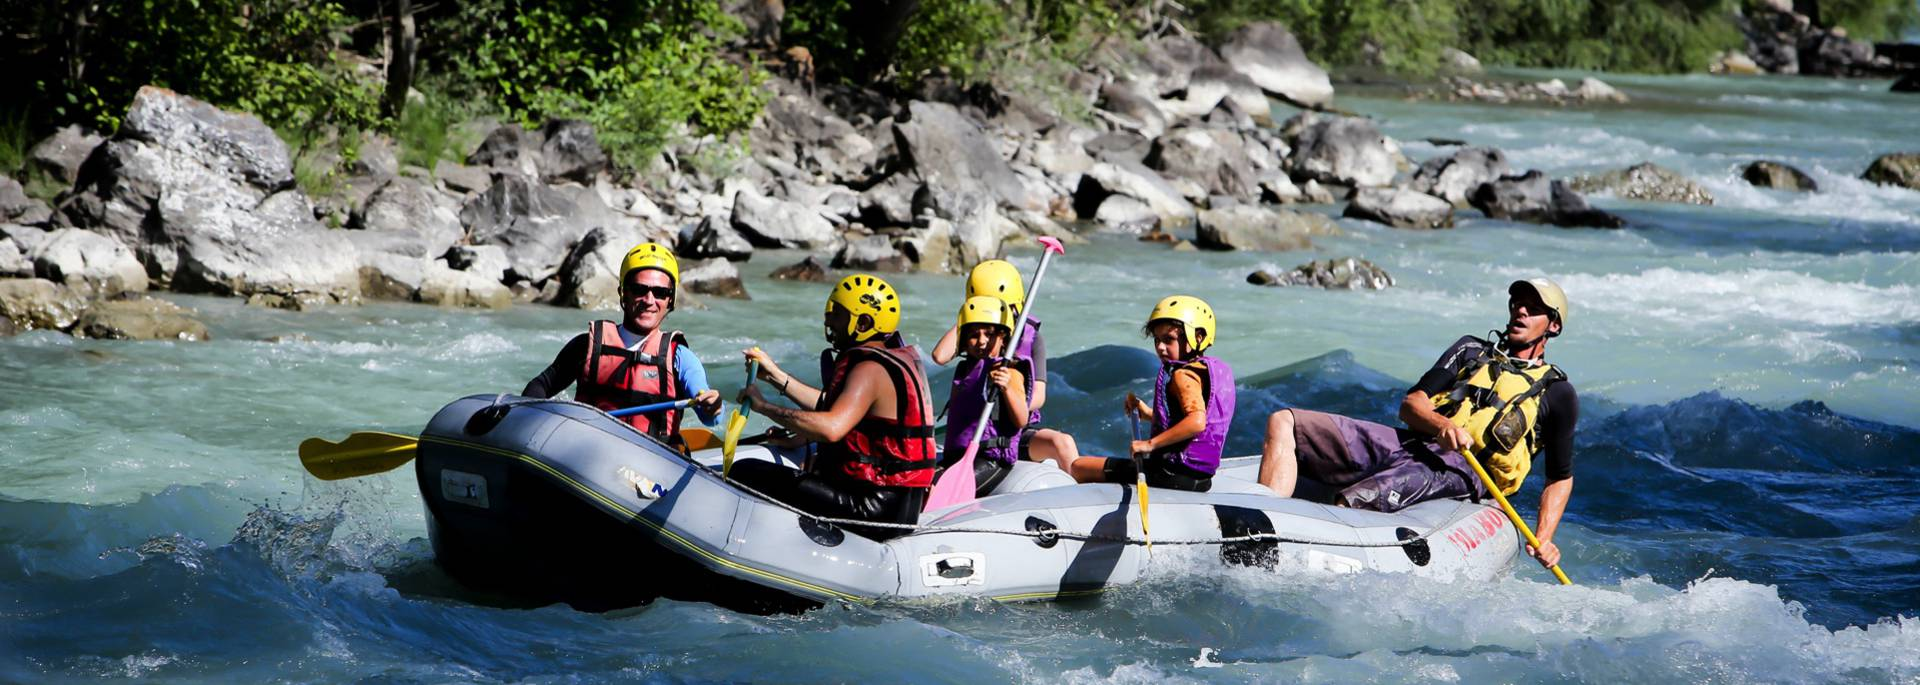 - rafting_enfants_famille_durance_leauvive_jannovakphotography-10.JPG